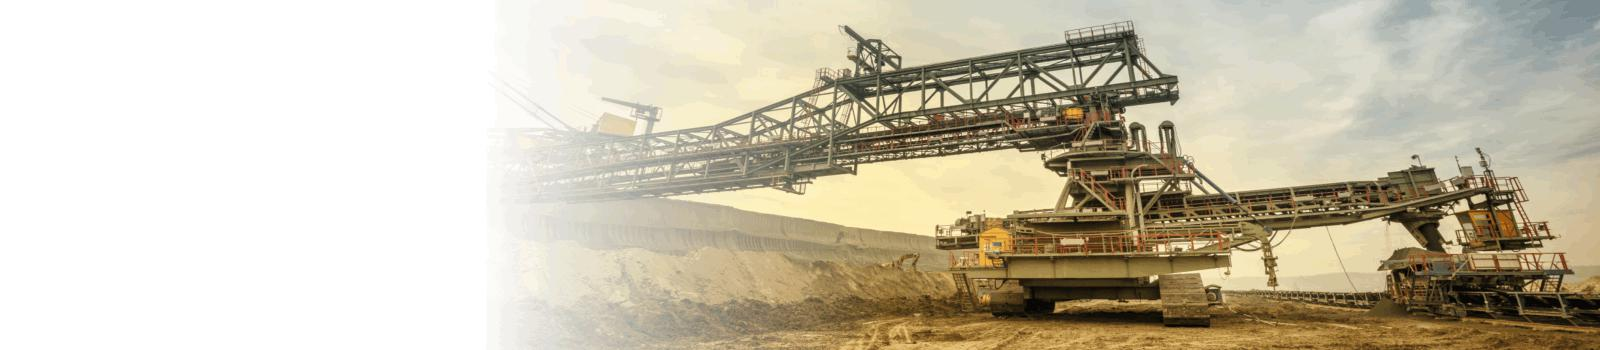 Mining and heavy industry software